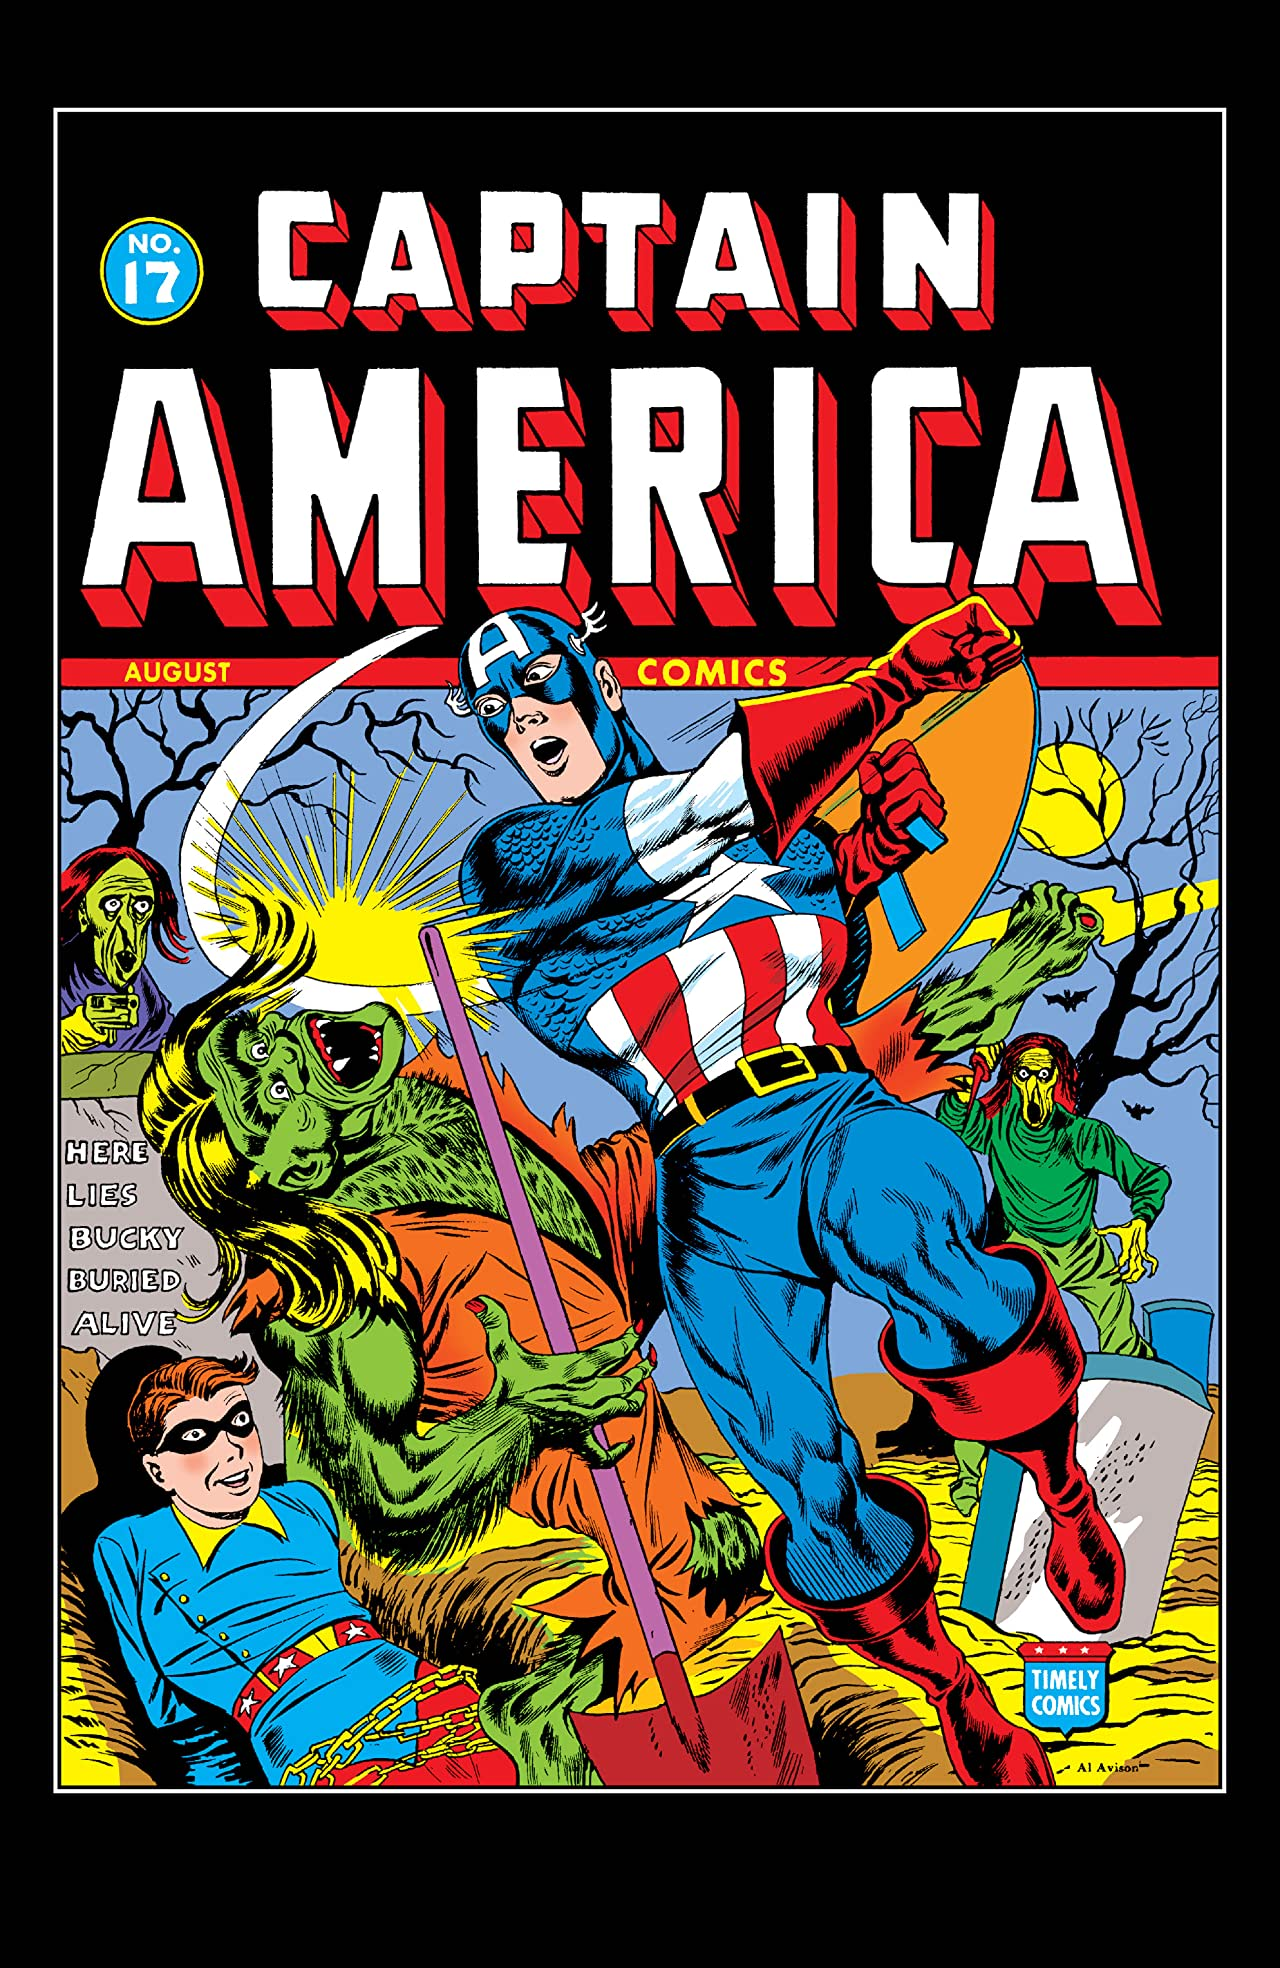 Captain America Comics (1941-1950) #17